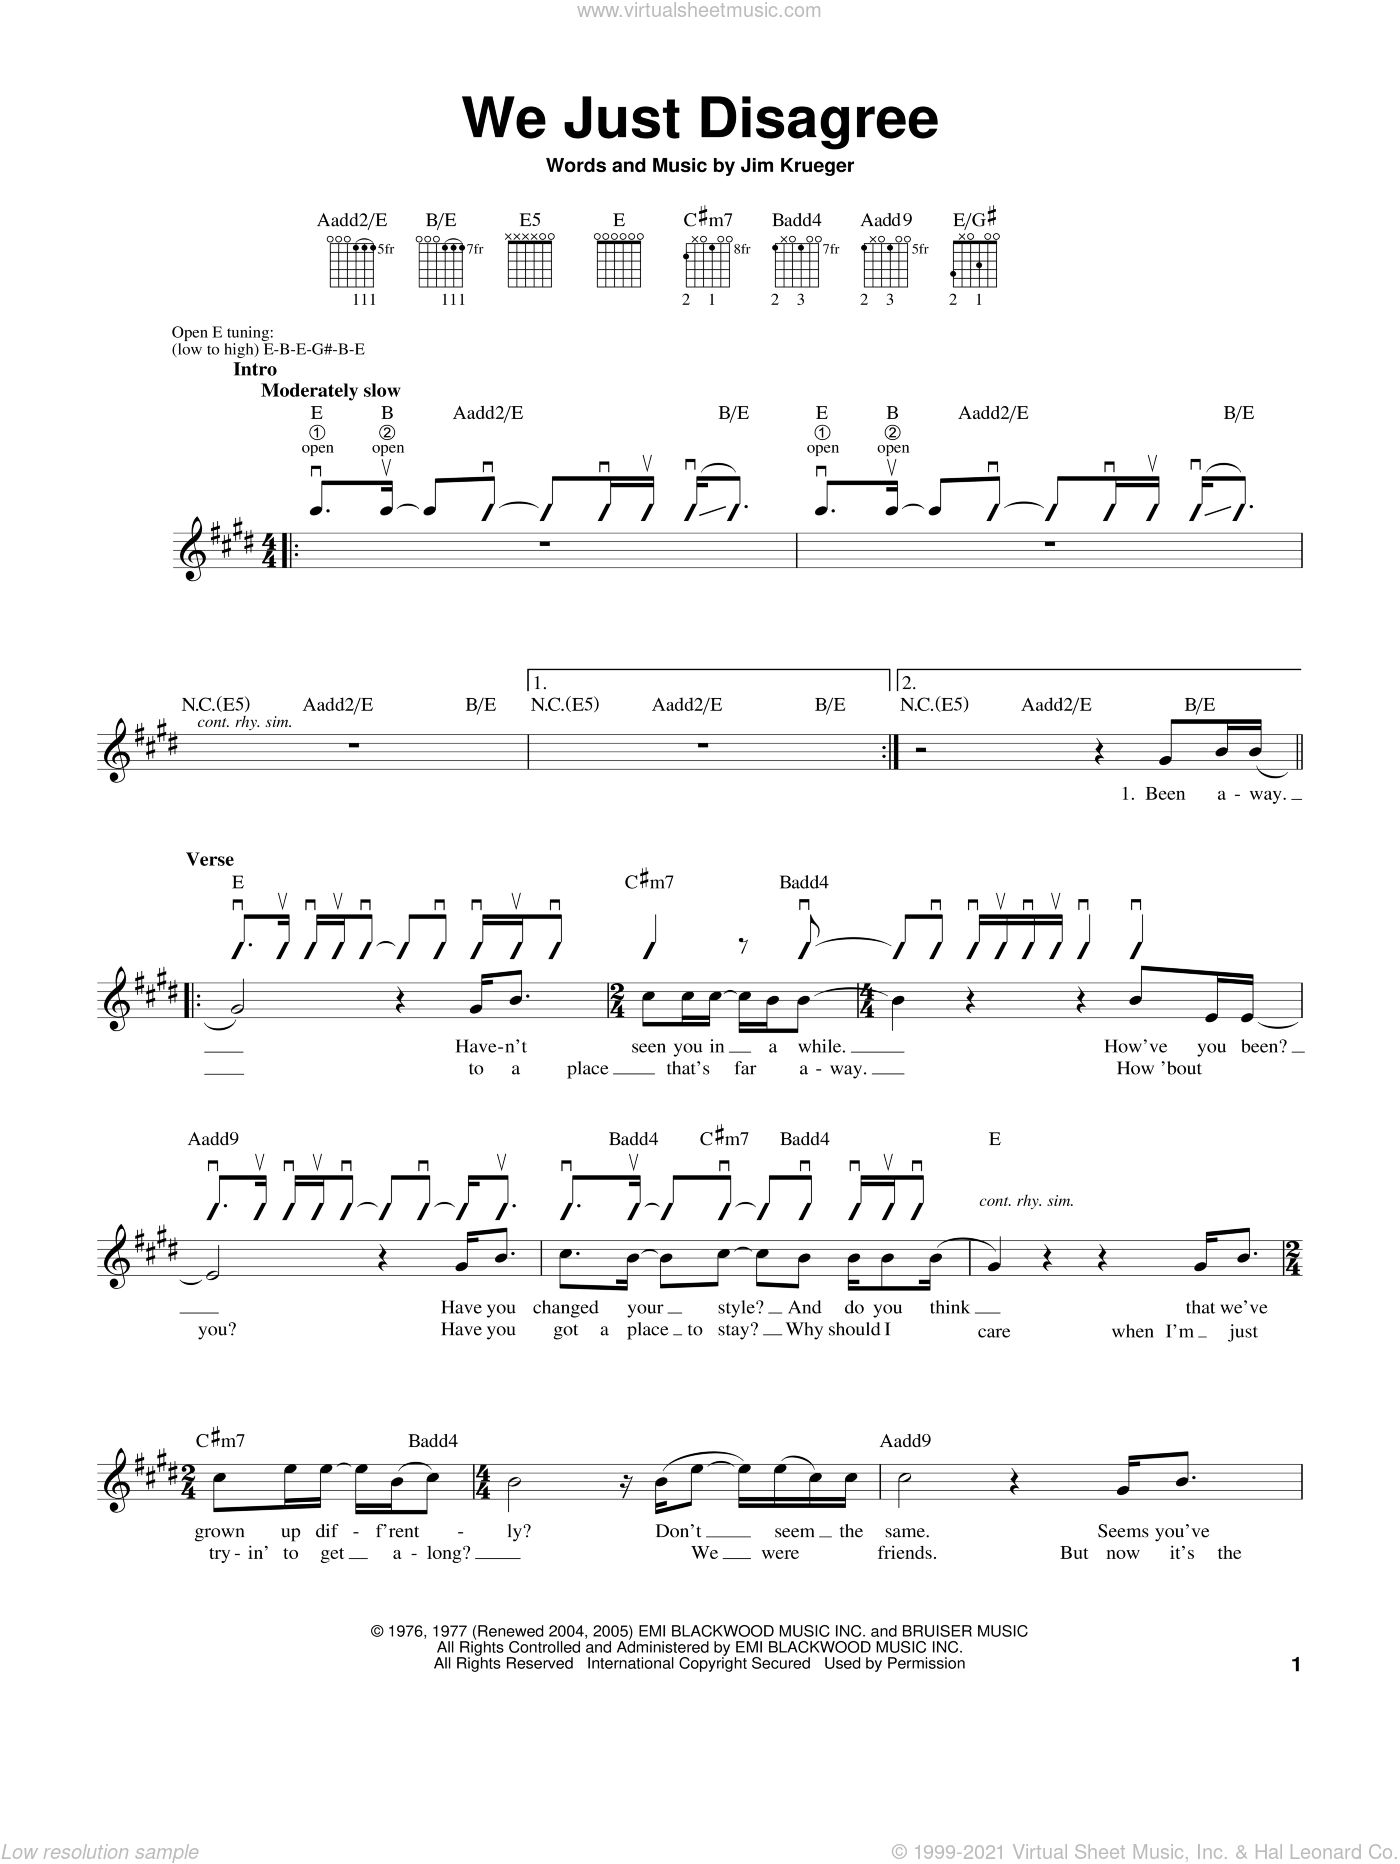 We Just Disagree sheet music for guitar solo (chords) by Jim Krueger, Billy Dean and Dave Mason. Score Image Preview.